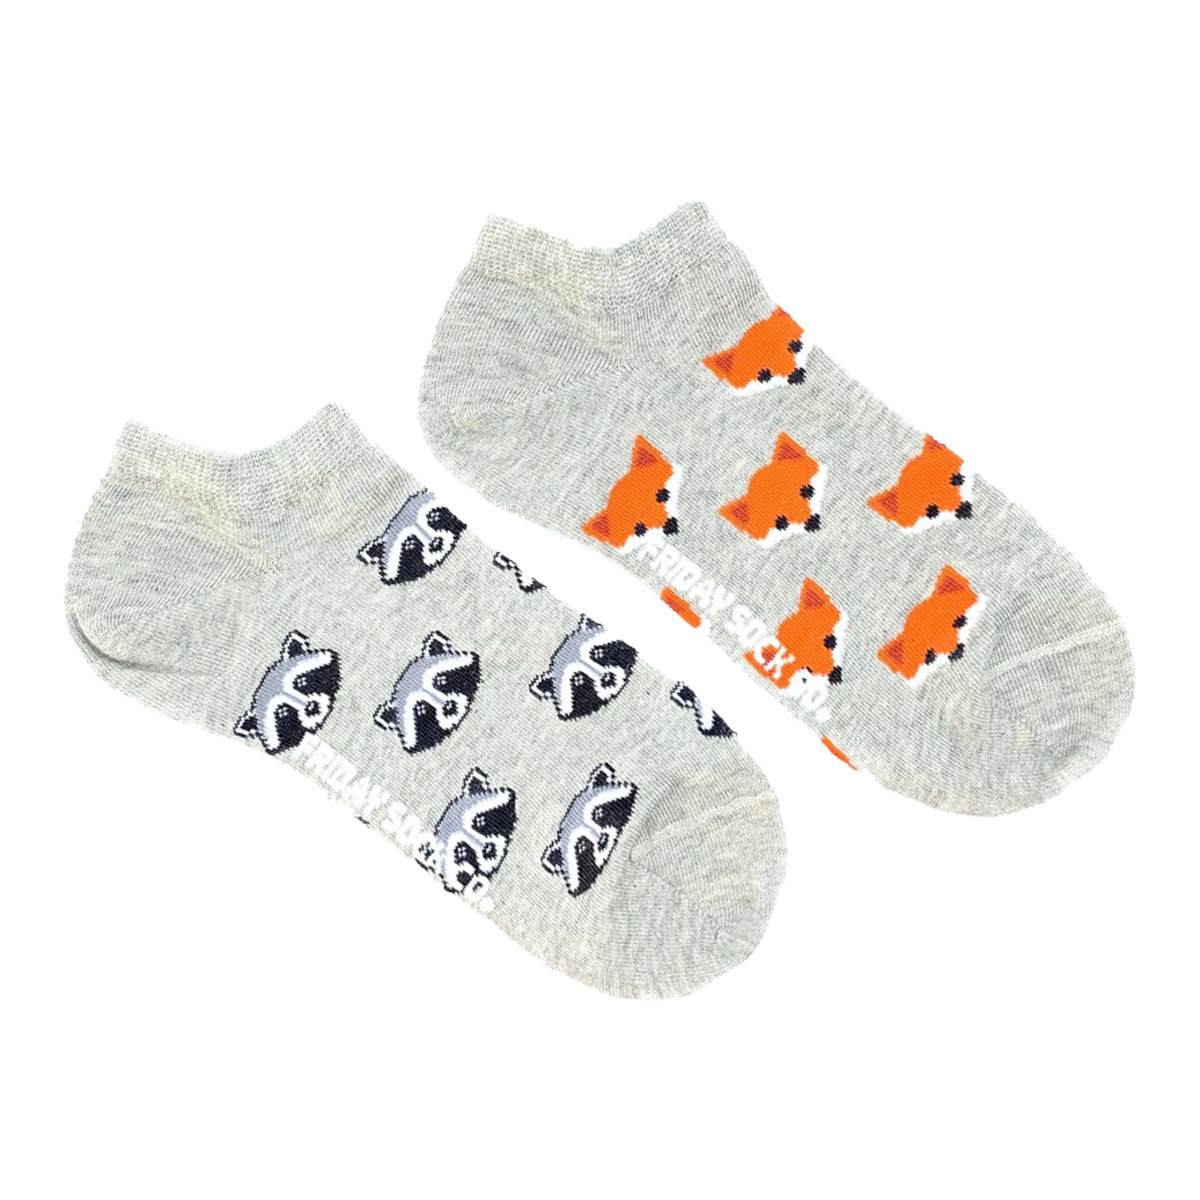 Friday Sock Co. Friday Sock Co. Women's Fox & Raccoon Ankle W 5 - 10 (M - 4 - 8)